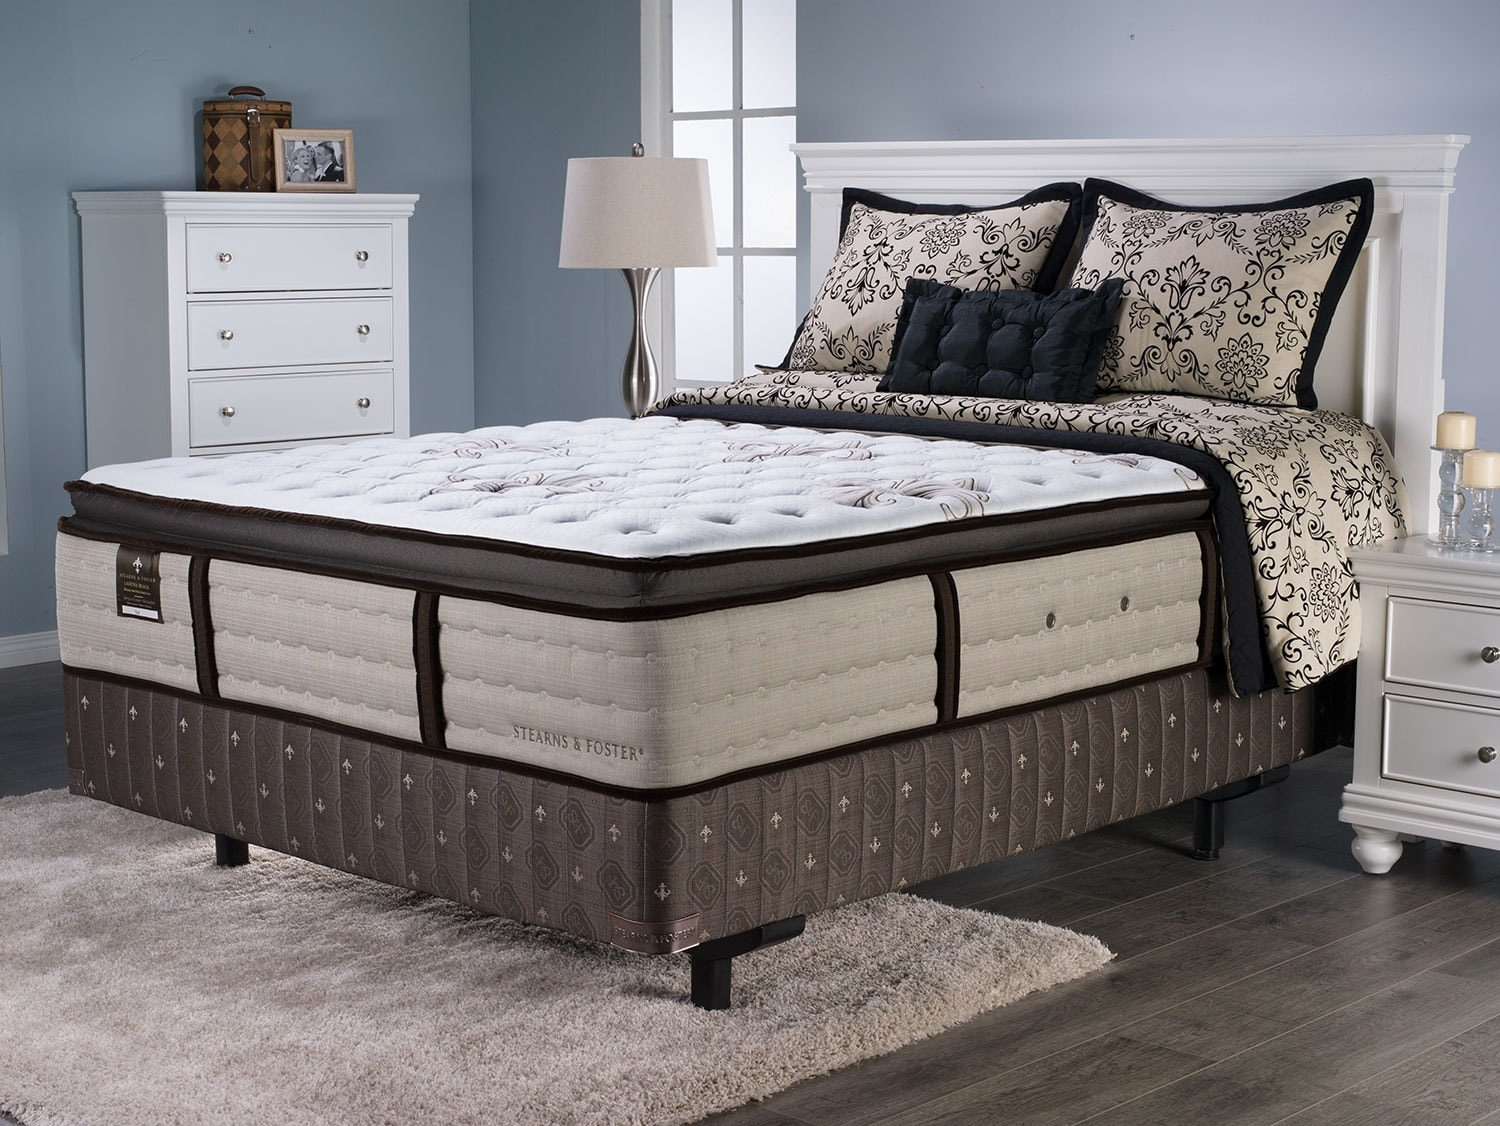 Stearns and Foster Laguna Beach Pillow-Top Queen Mattress Set